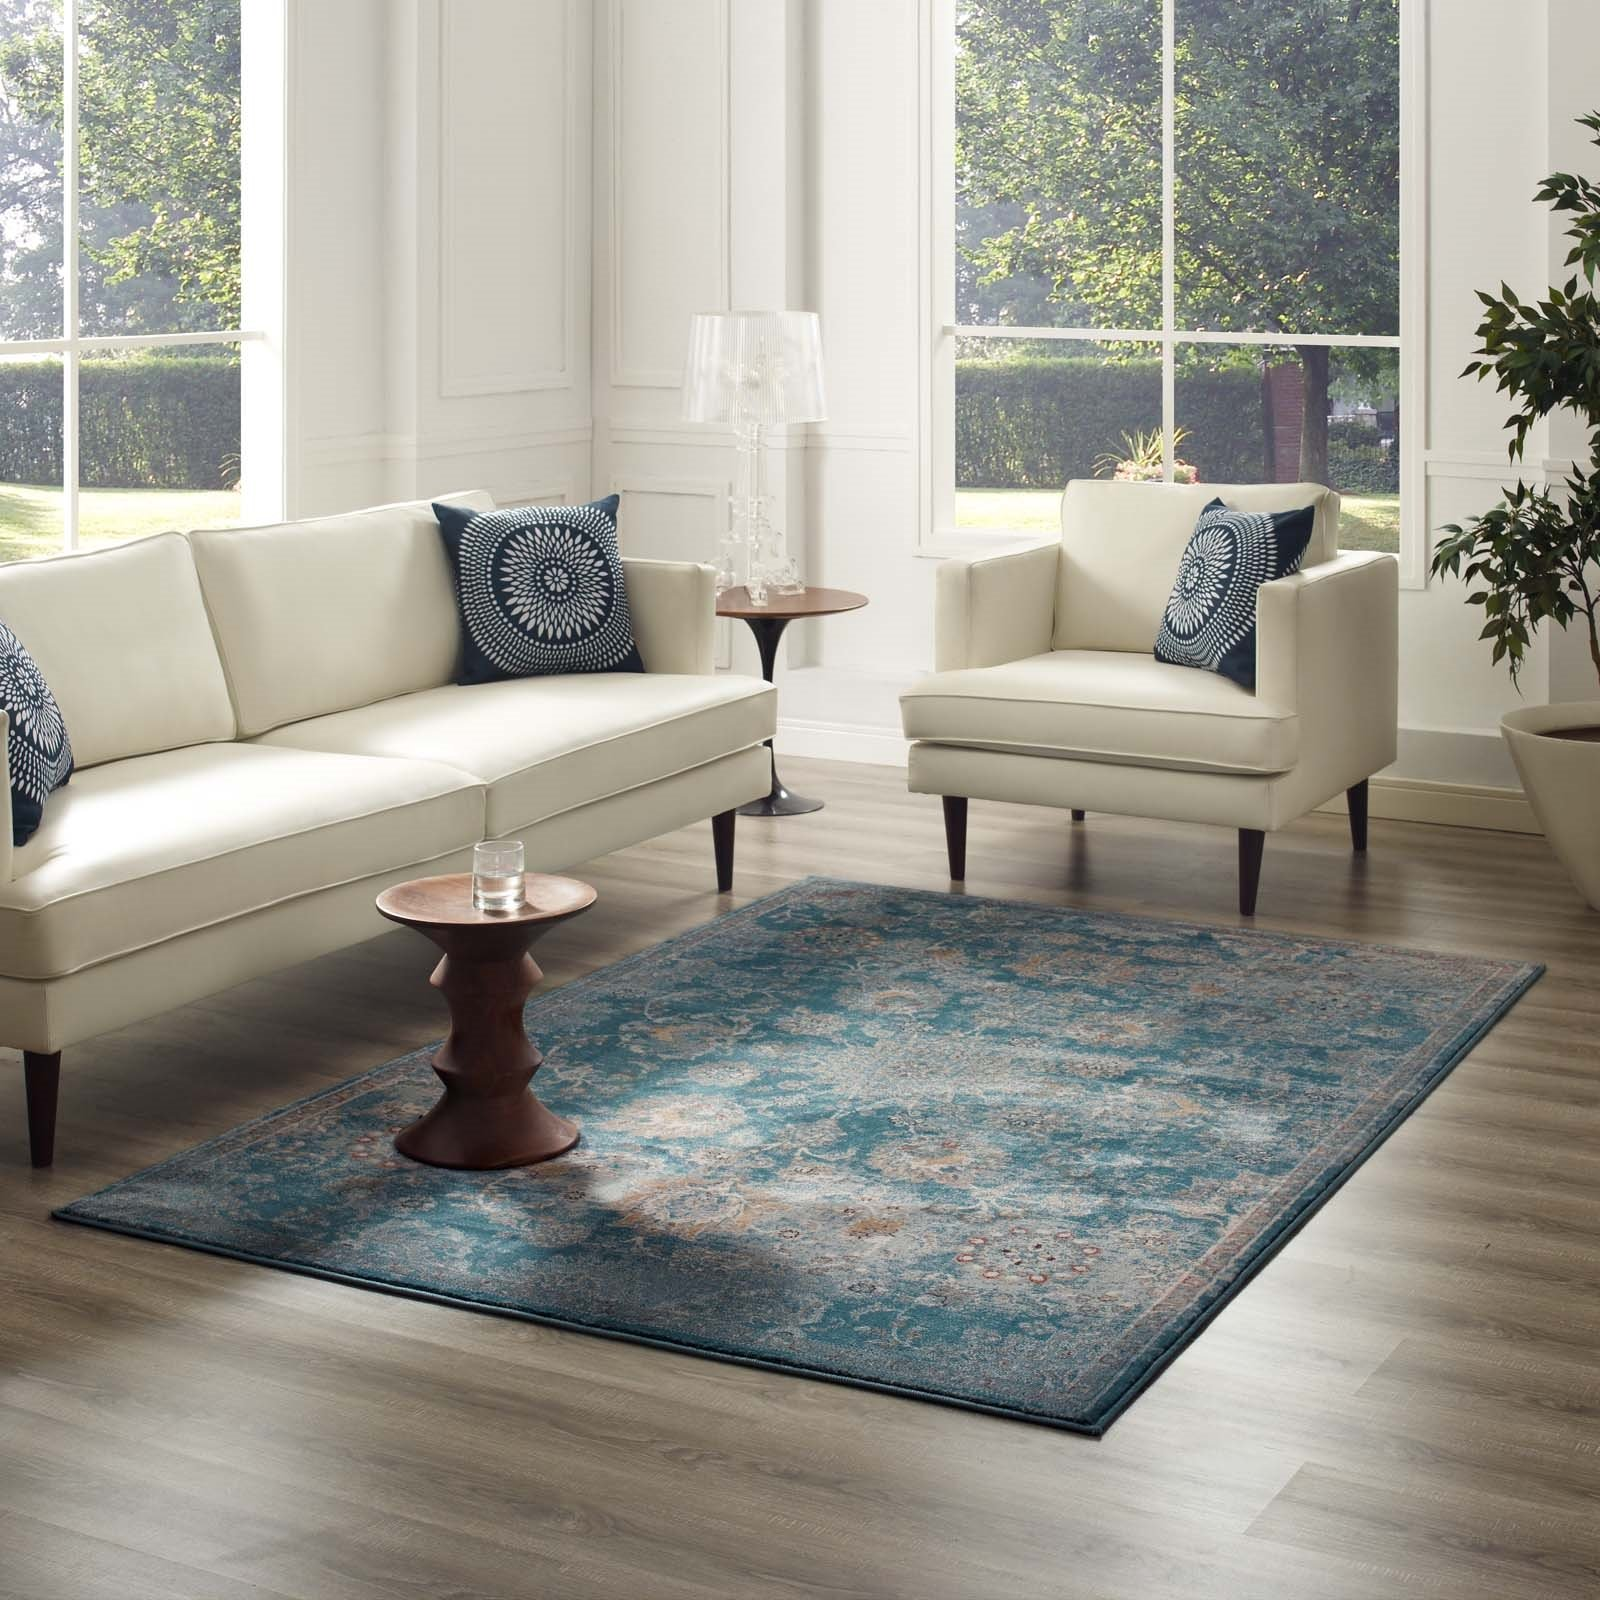 Cynara Distressed Floral PersianMedallion 8x10 Area Rug in Silver Blue, Teal and Beige Product Image